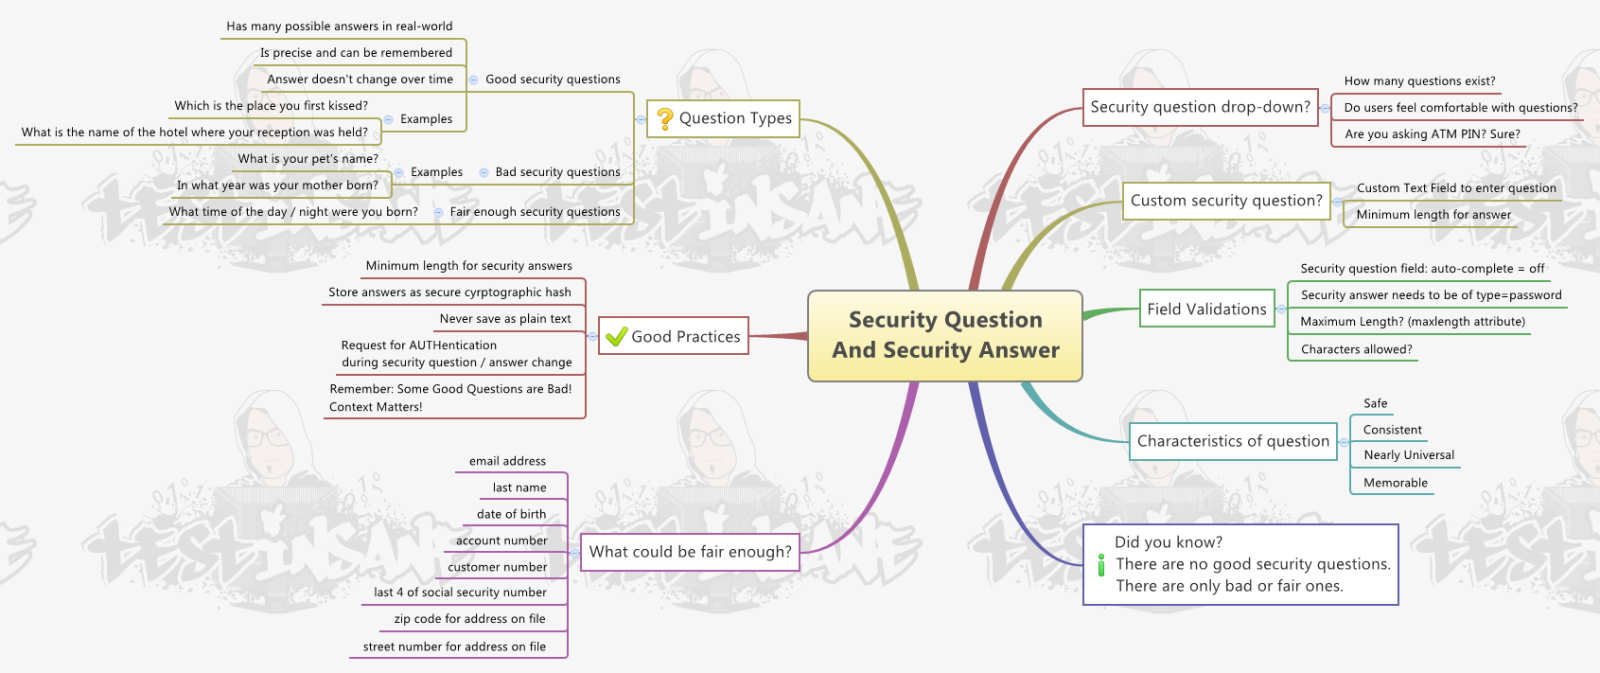 Security Question and Security Answer Testing